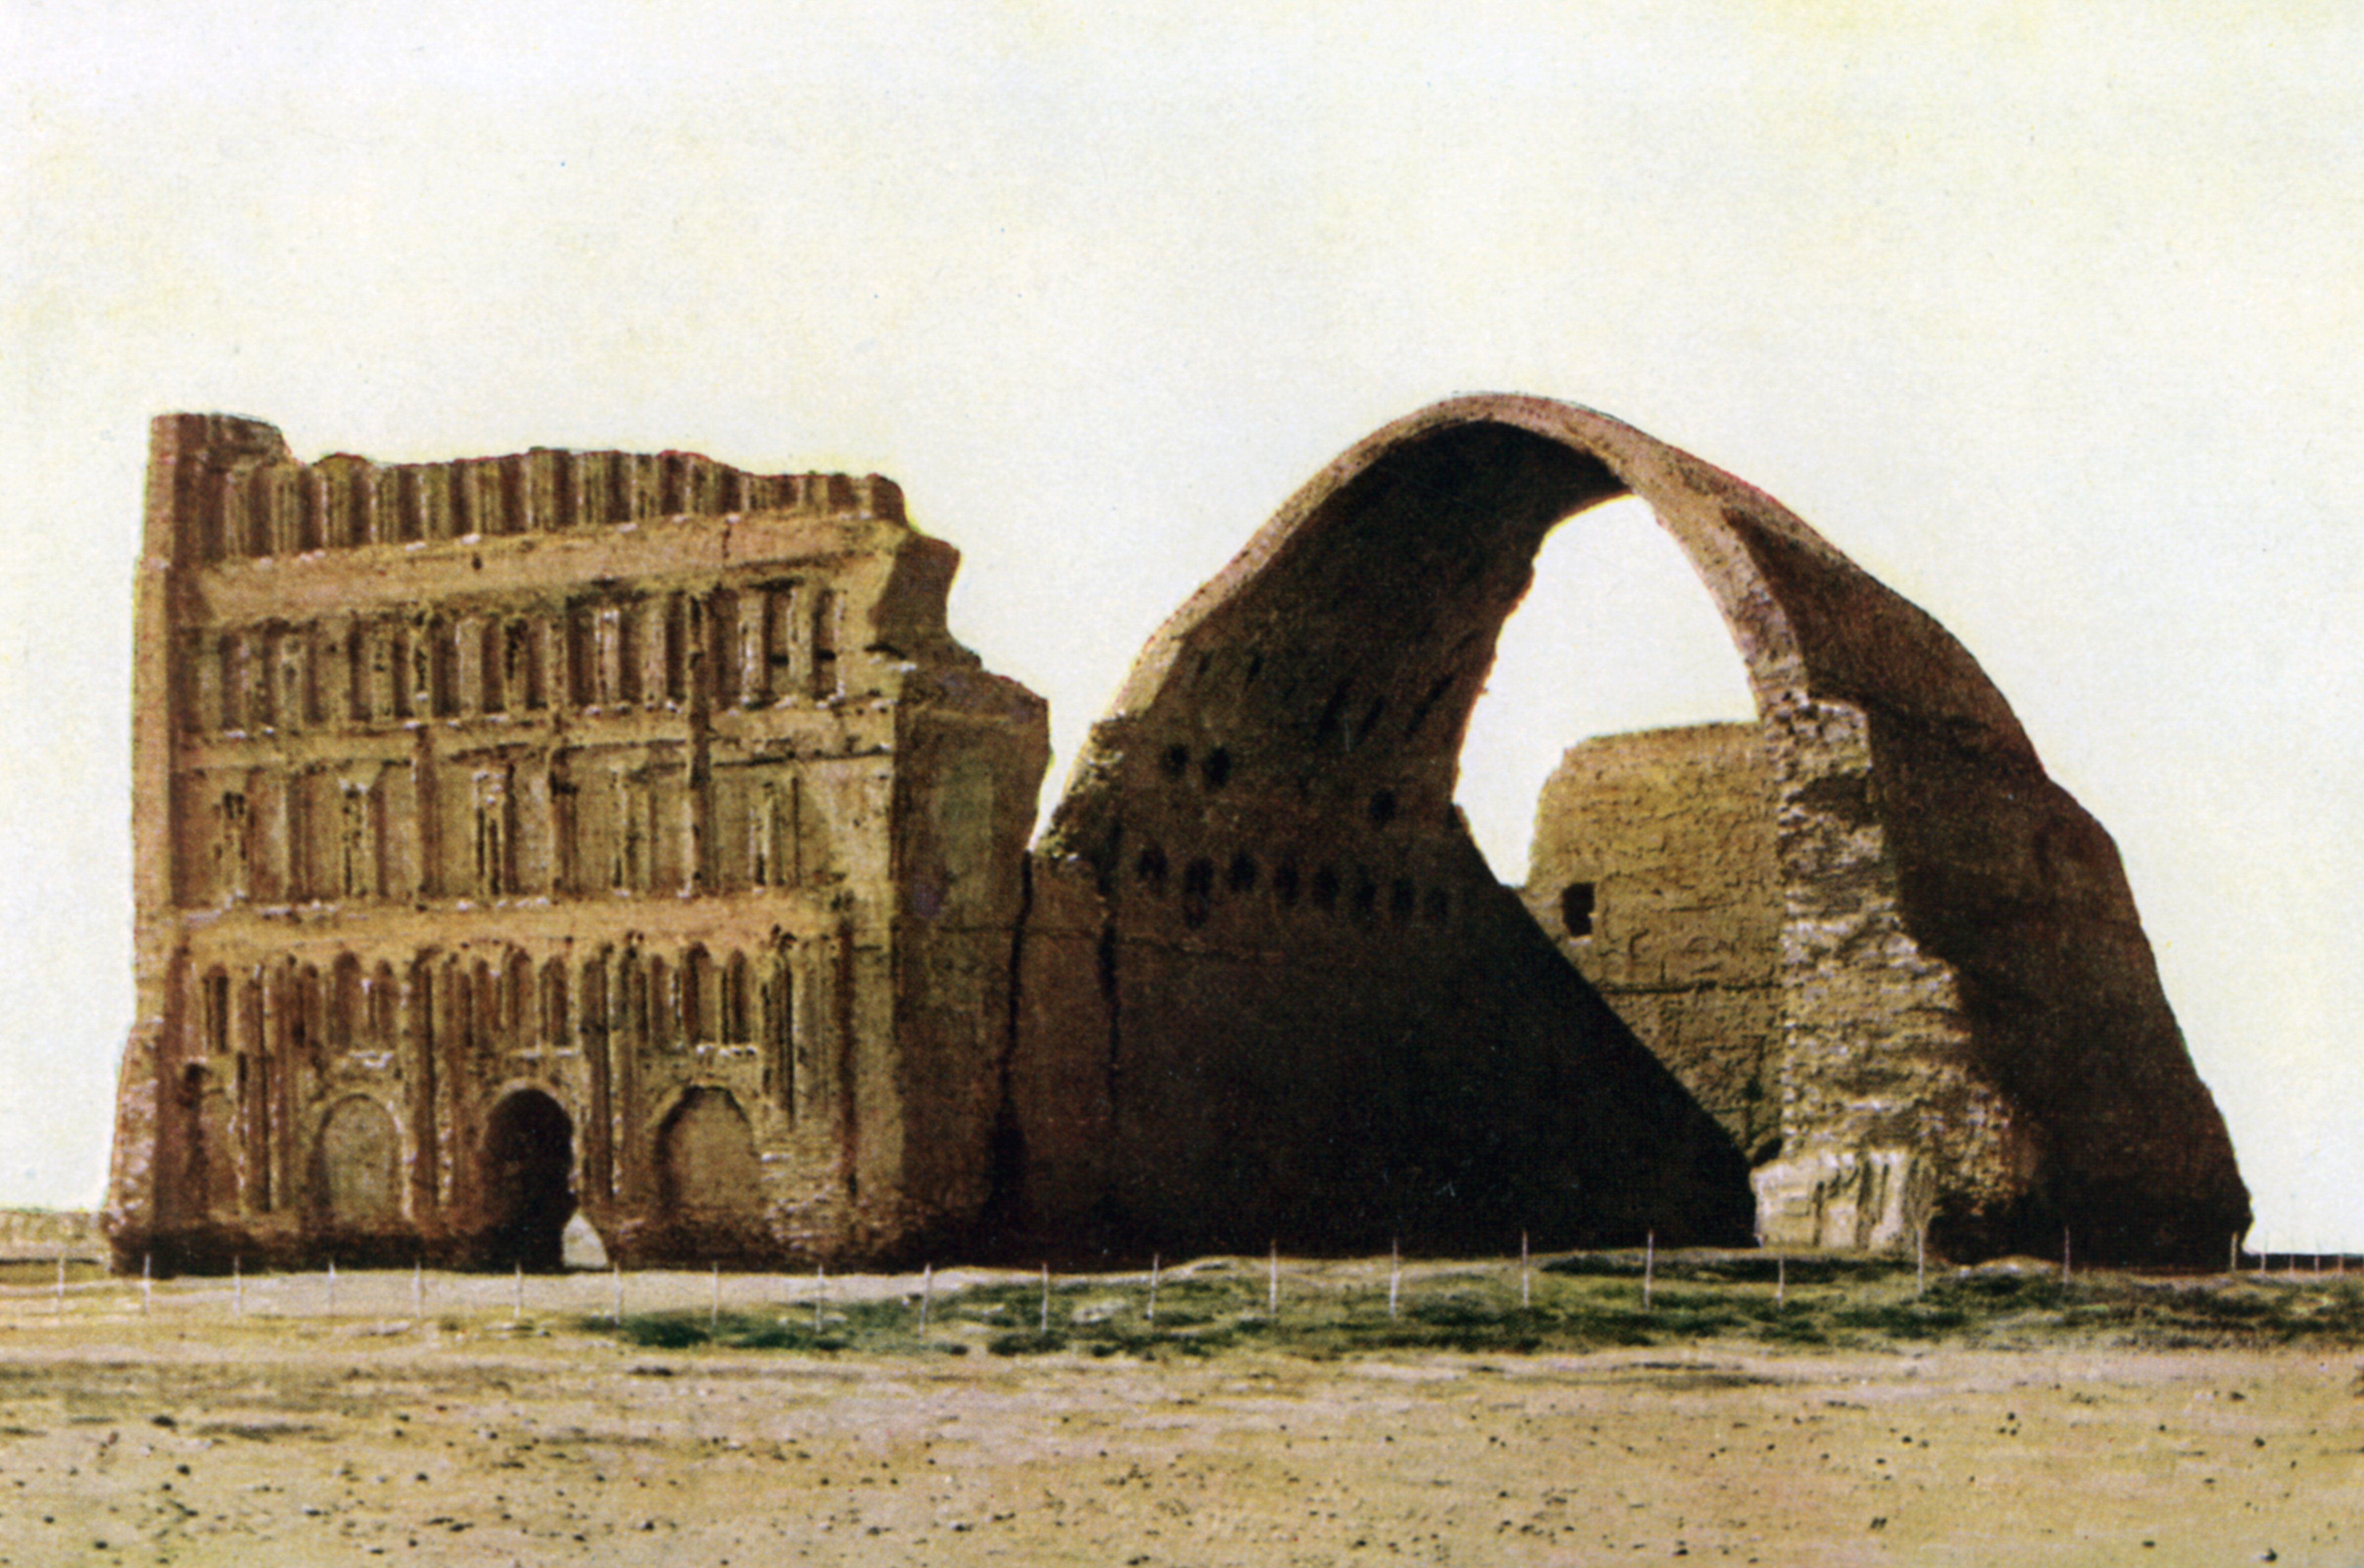 the largest single-span vault of unreinforced brickwork in the world, This great arch was the main portico of the audience hall of the imperial Persian palace